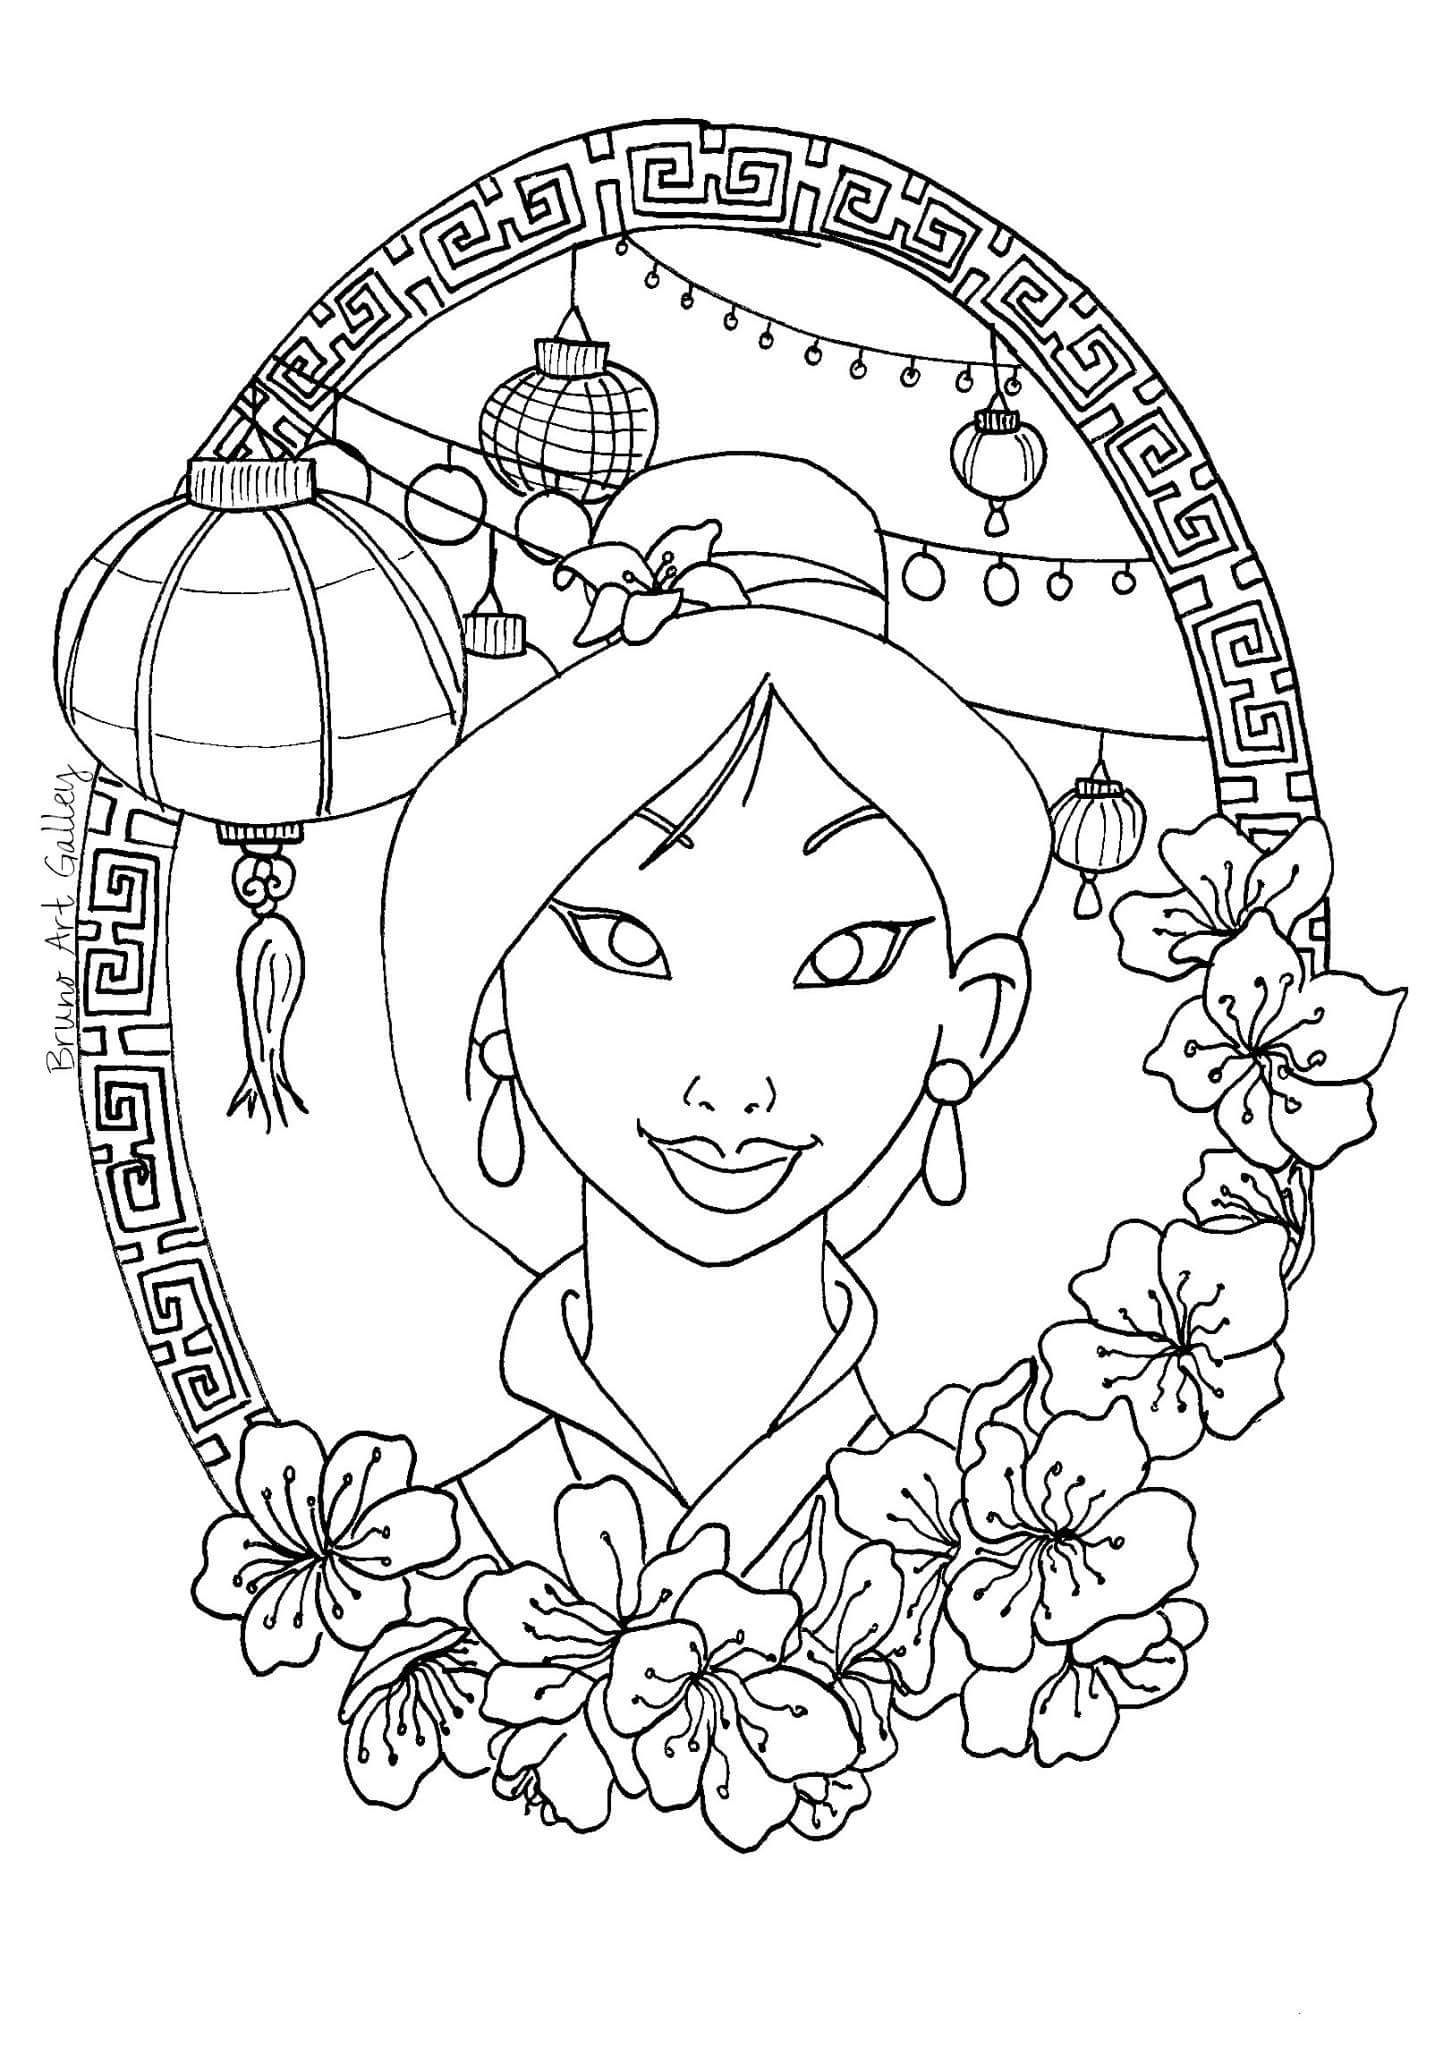 Photo Only Disney Princess Coloring Pages Cartoon Coloring Pages Princess Coloring Pages [ 2048 x 1435 Pixel ]